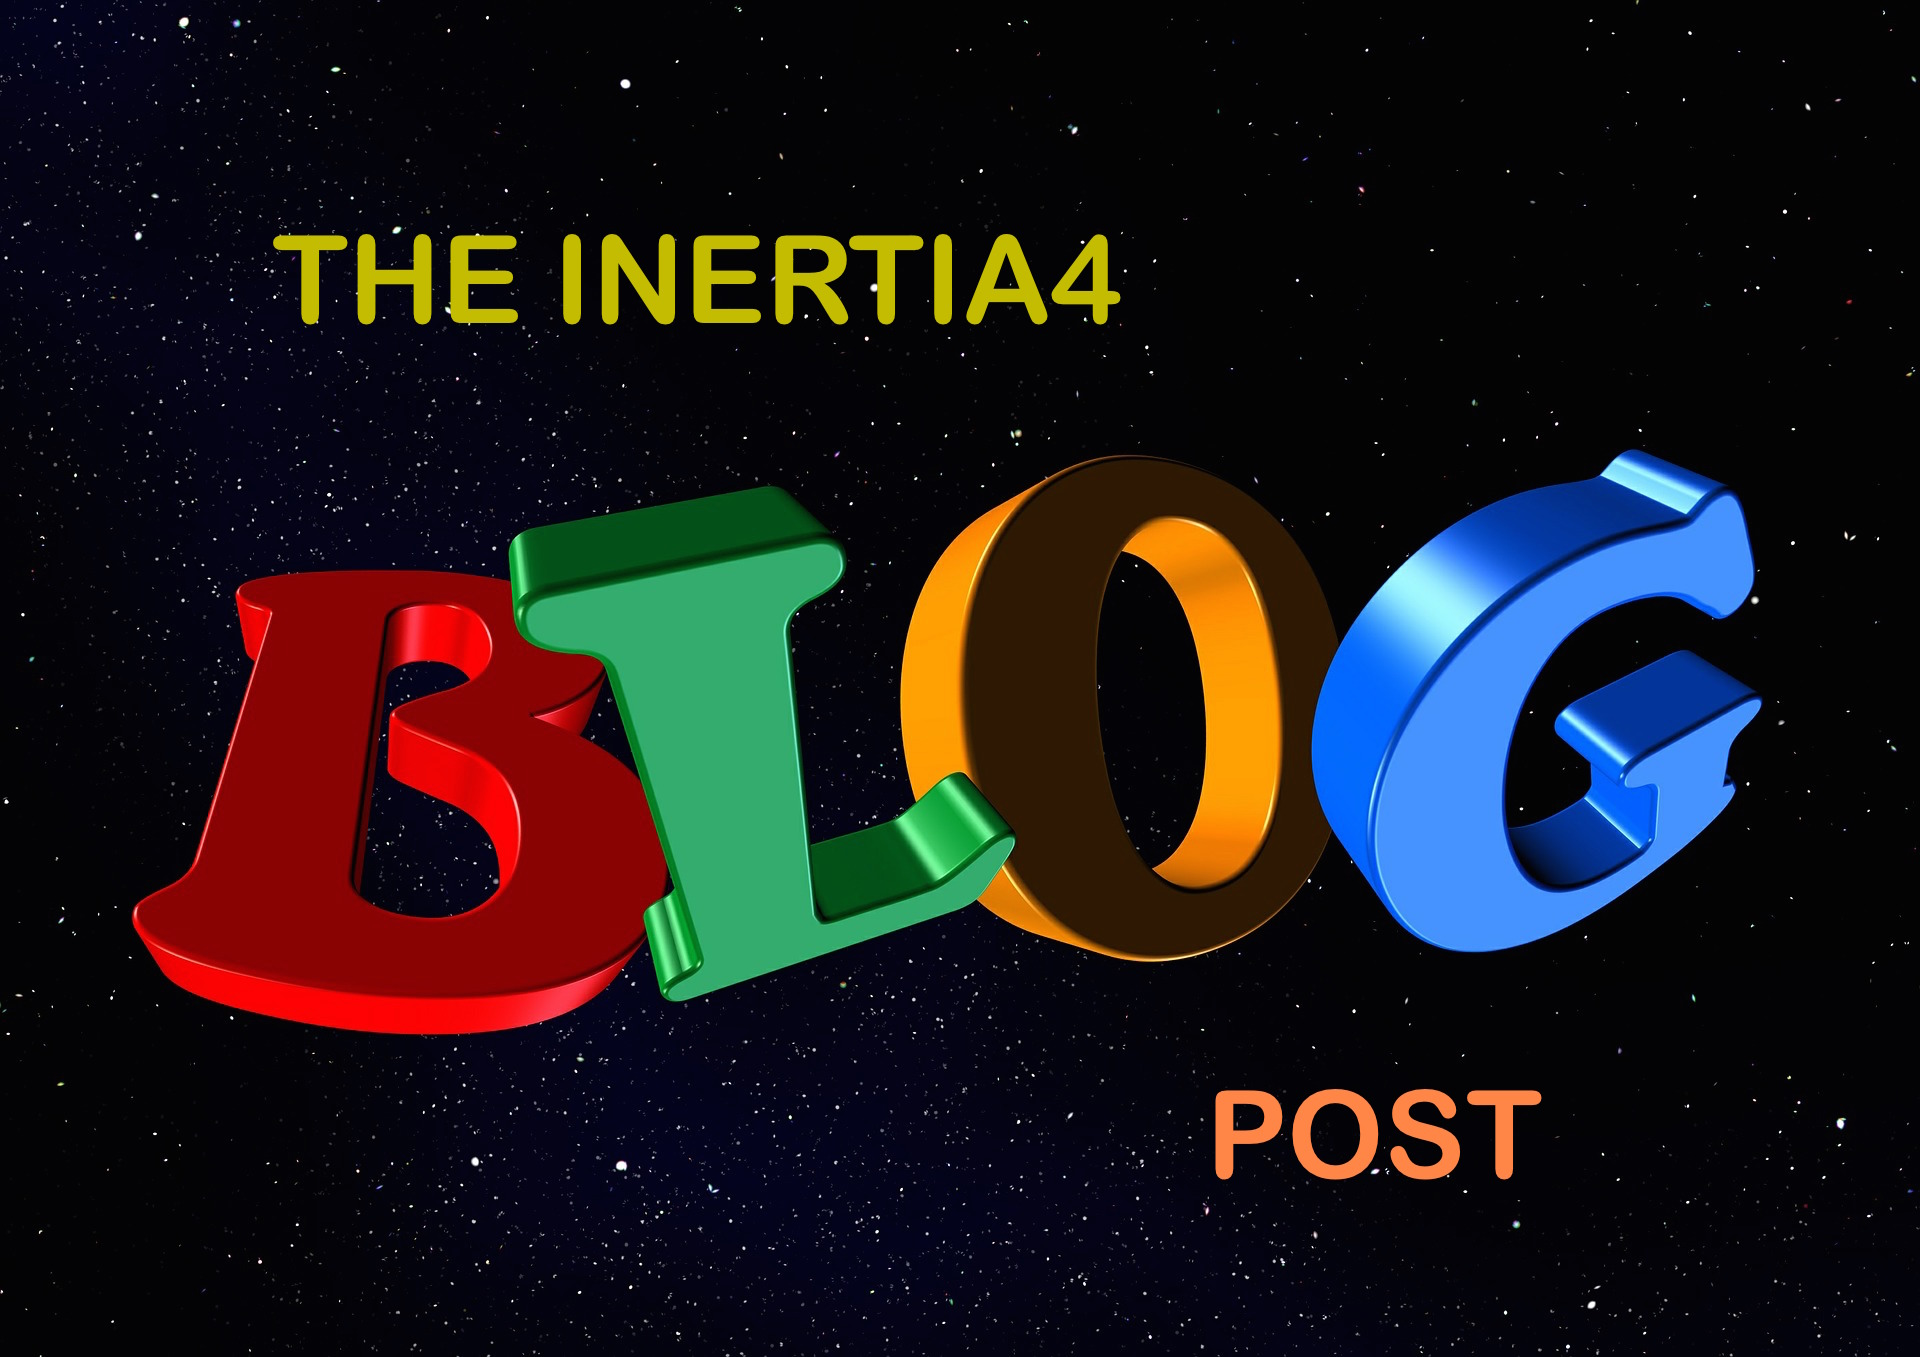 article image - uploaded by inertia4